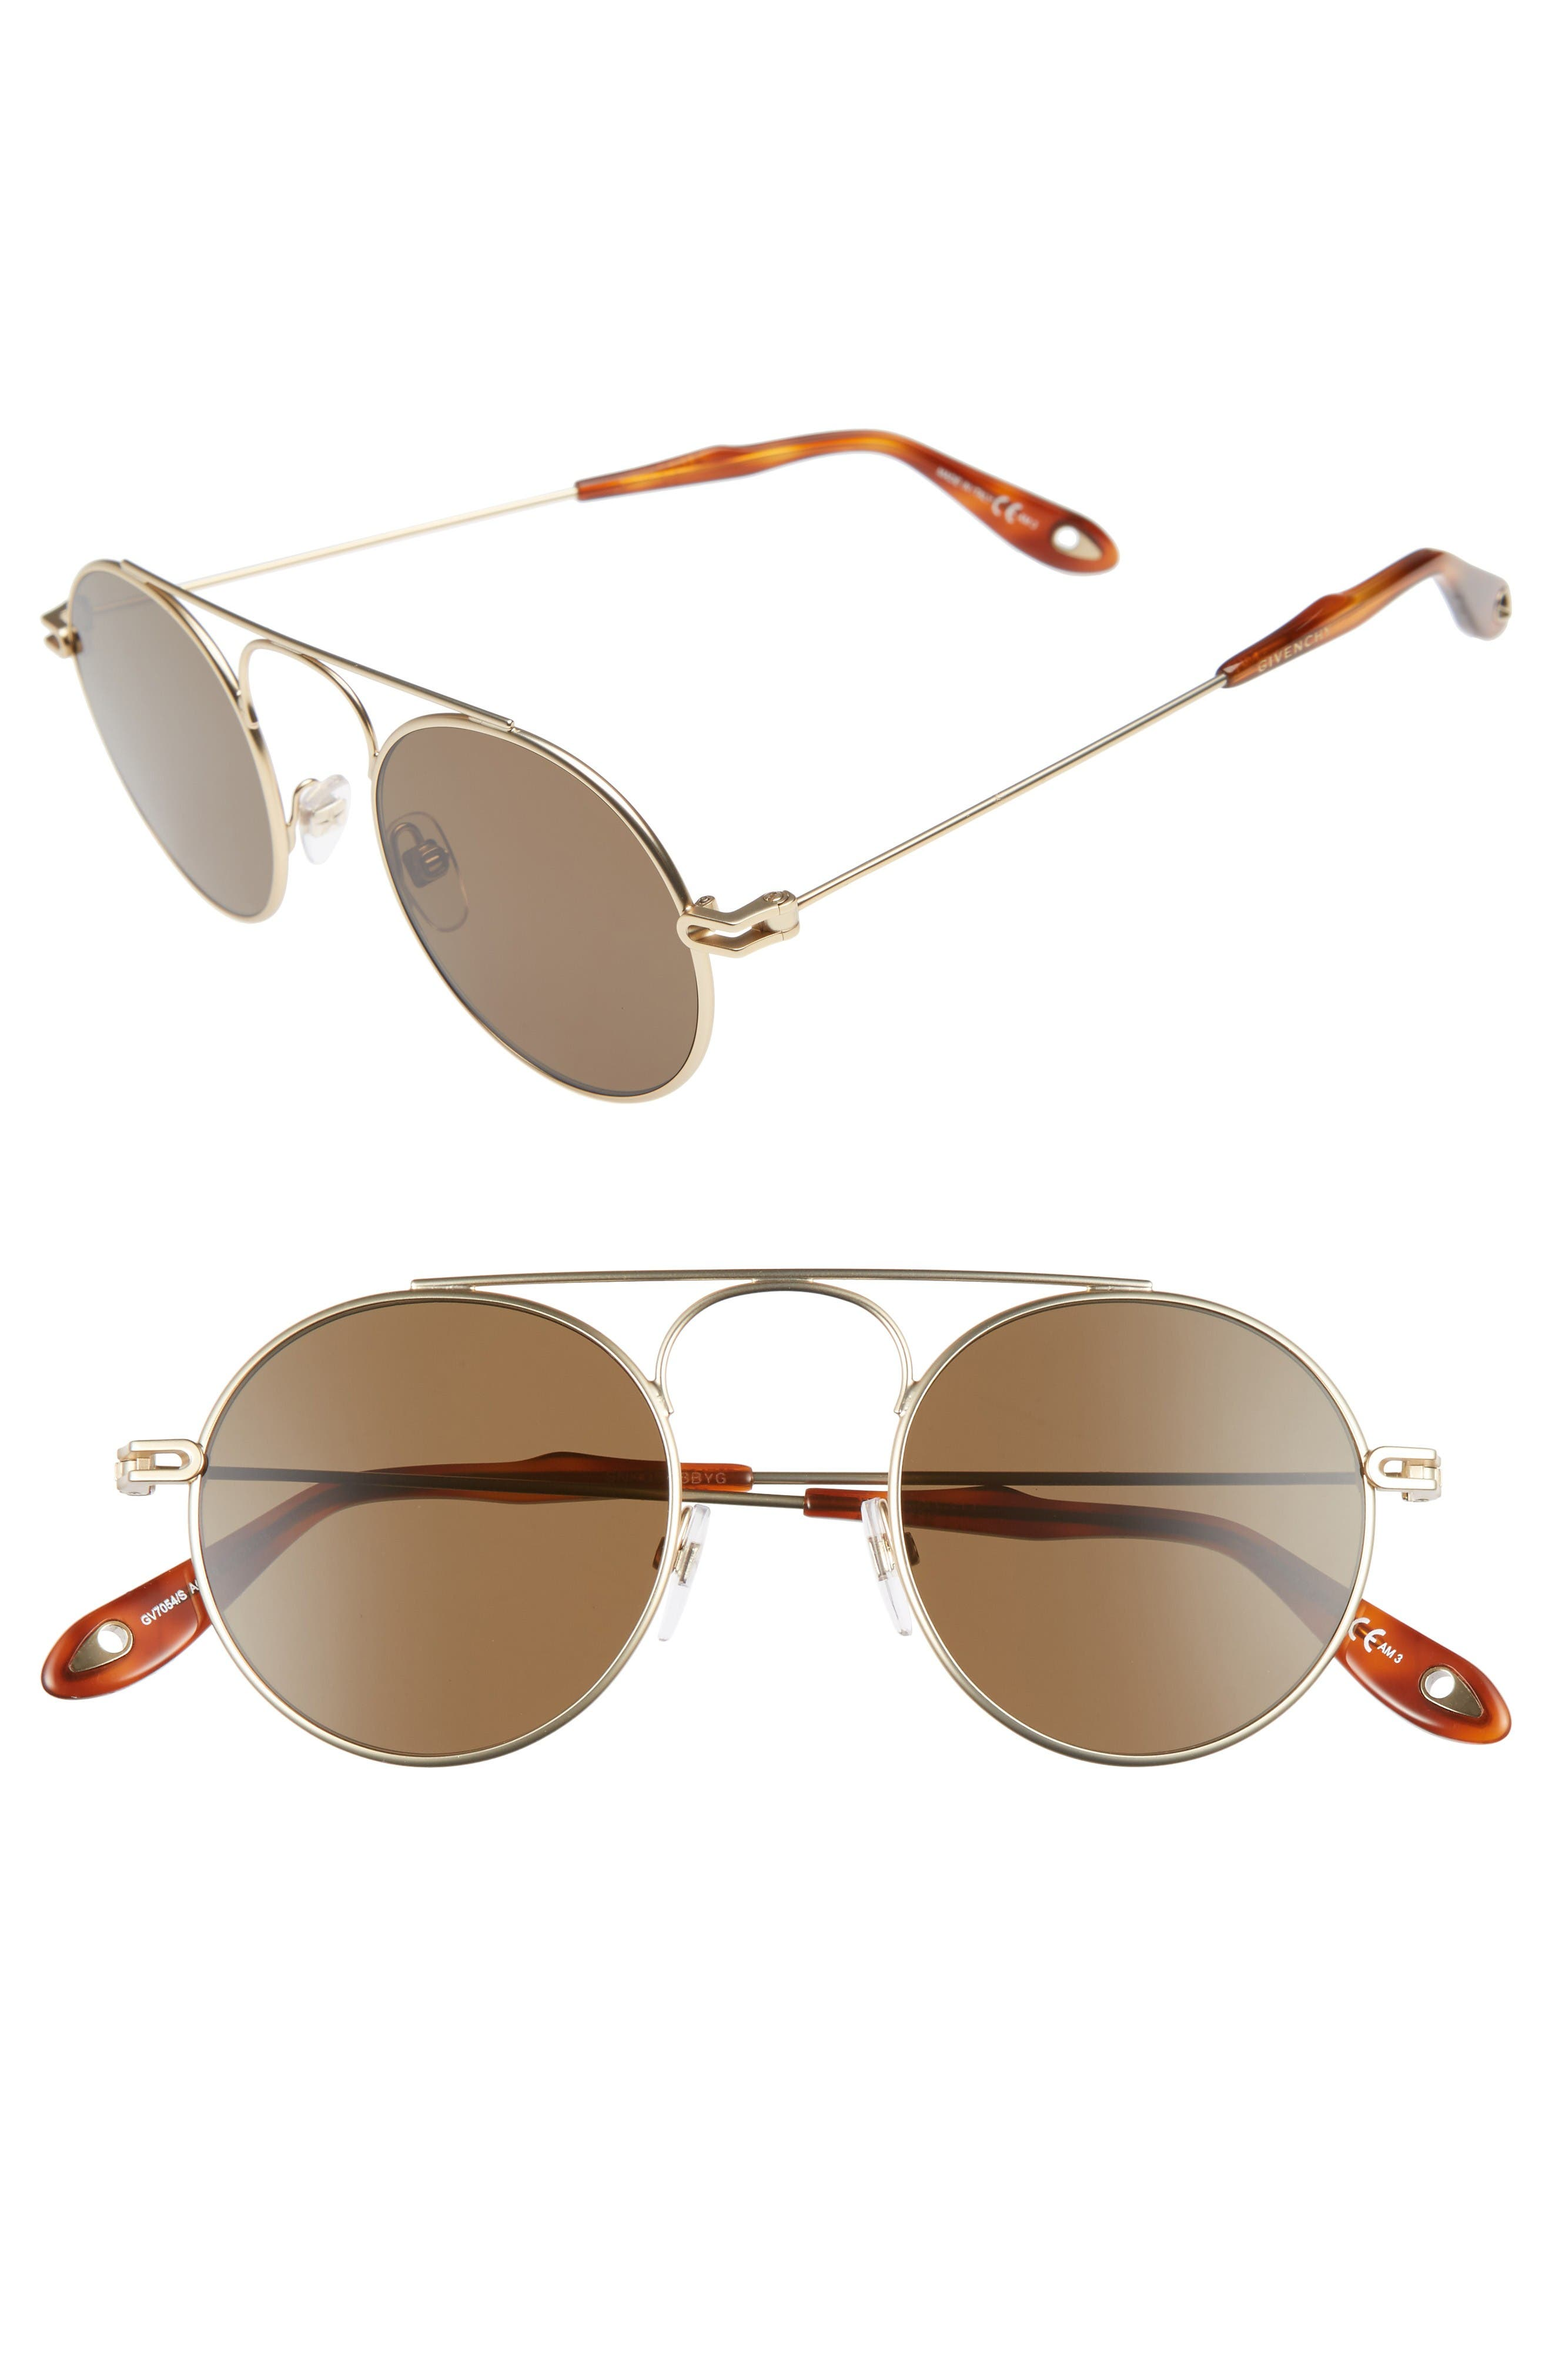 48mm Round Sunglasses,                             Main thumbnail 1, color,                             Gold